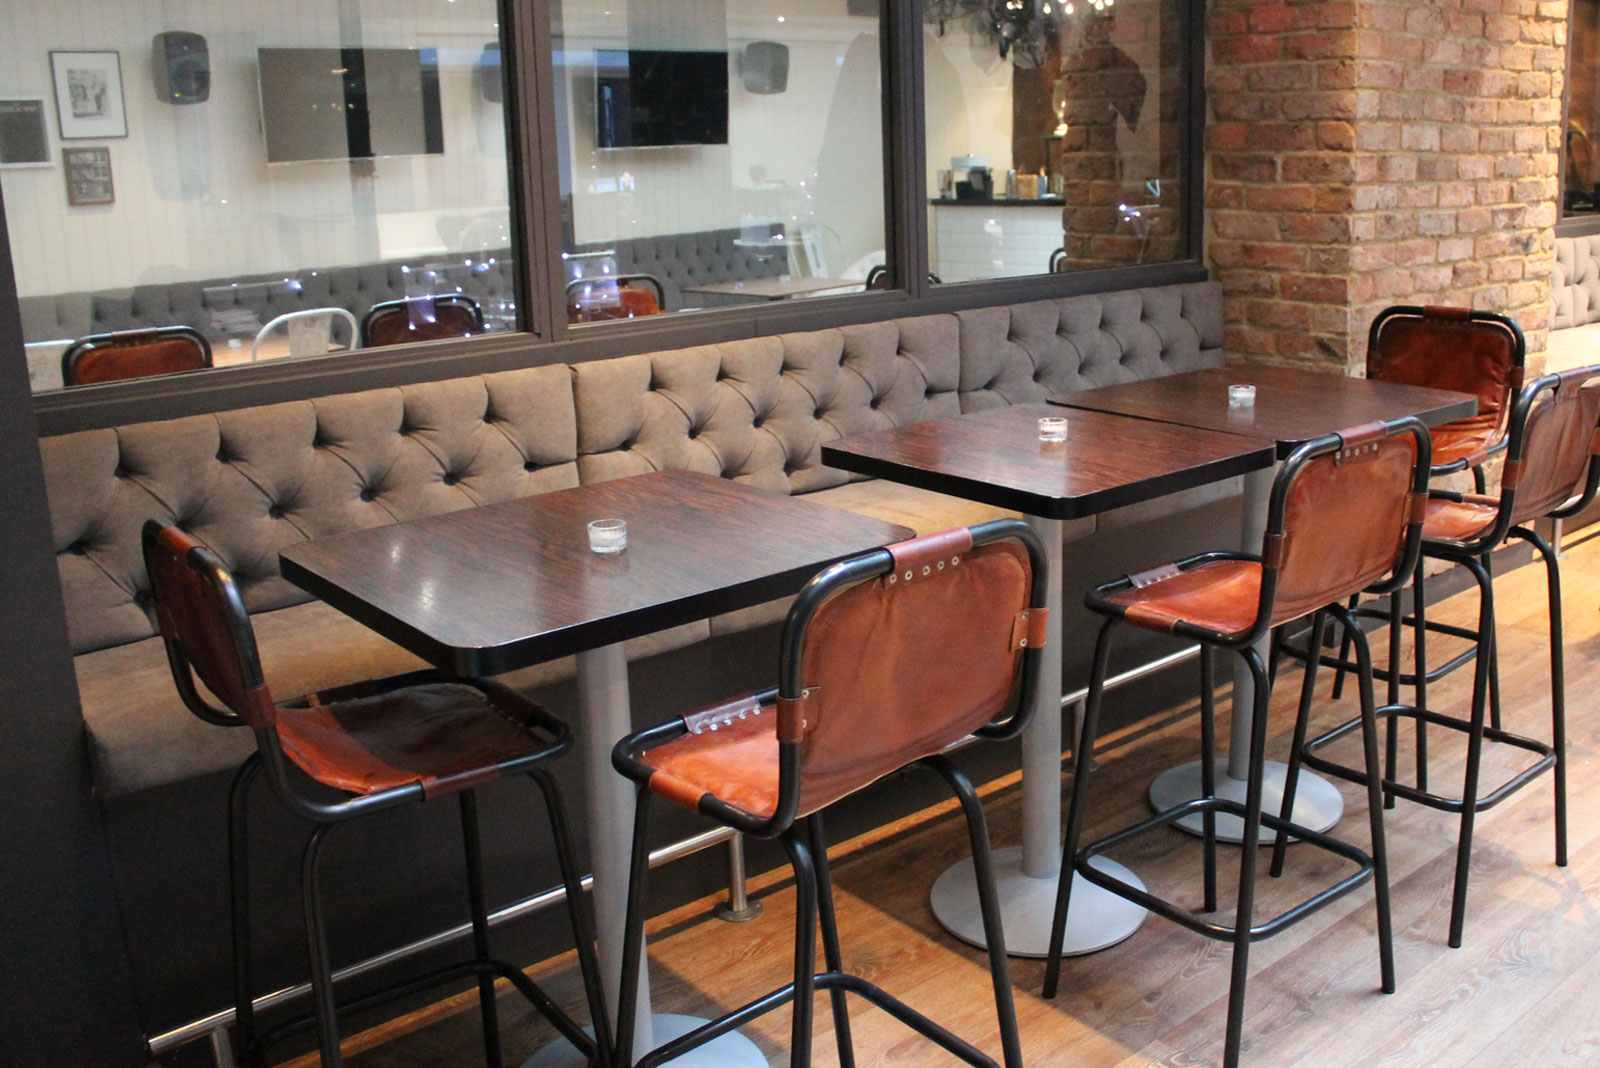 Banquette Seating for Envy Bar London